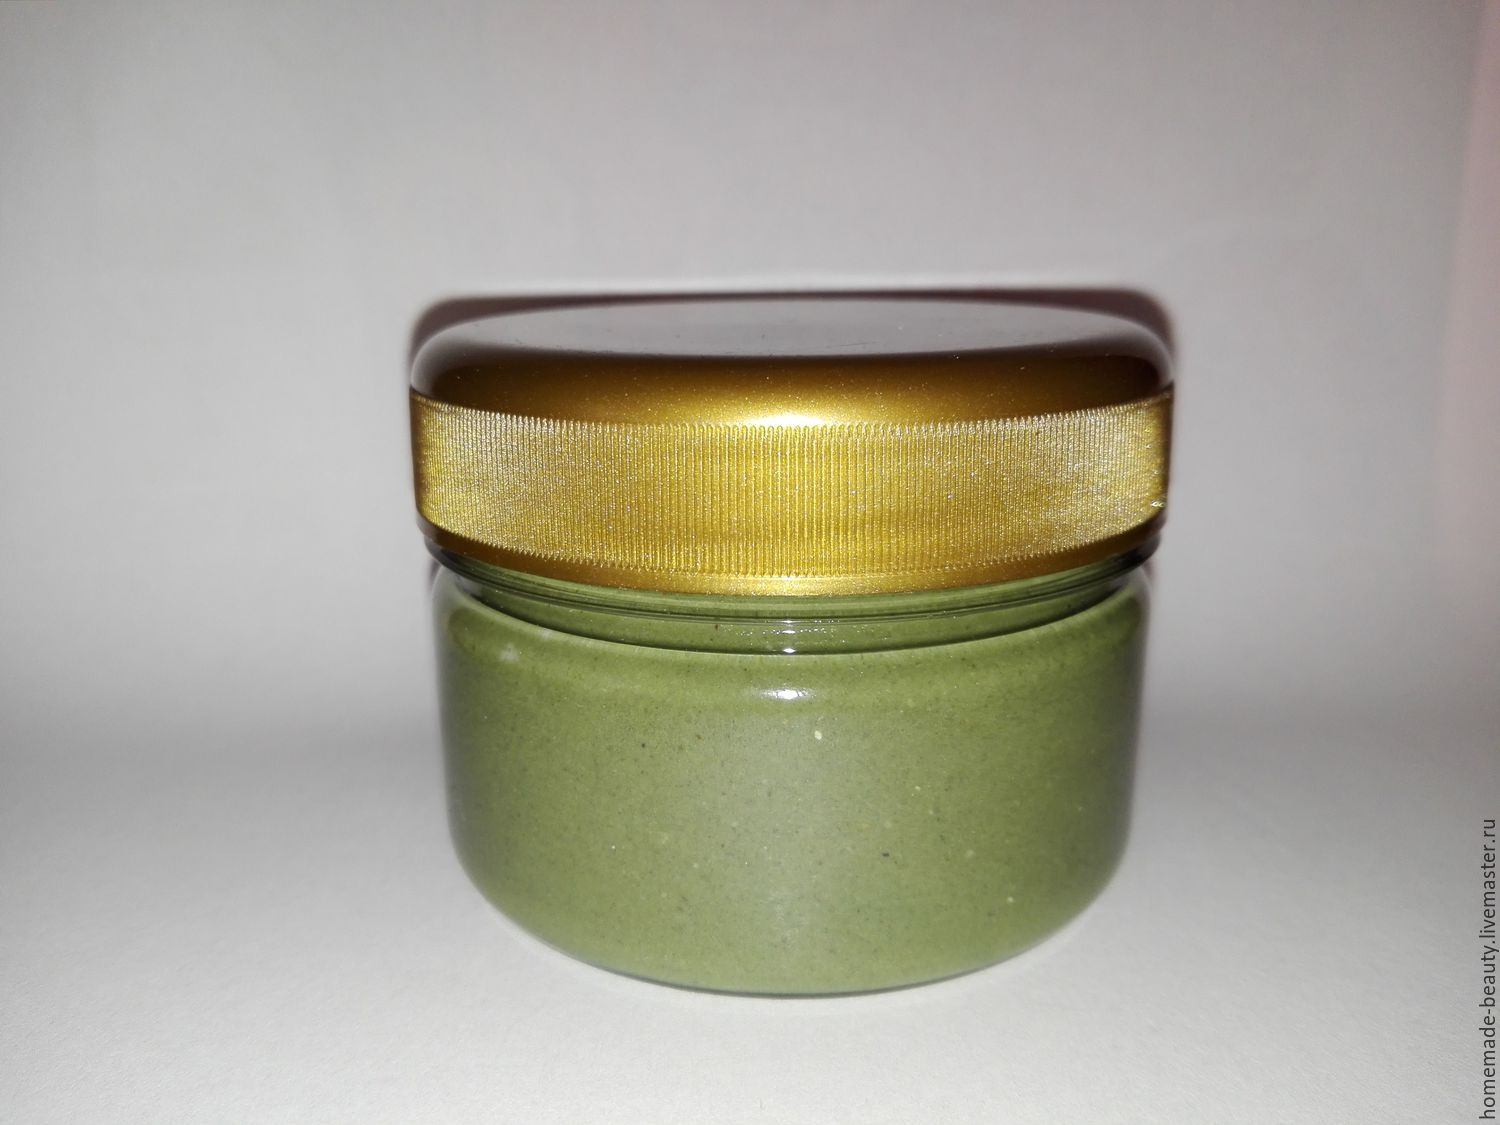 The photo shows the mask 65ml